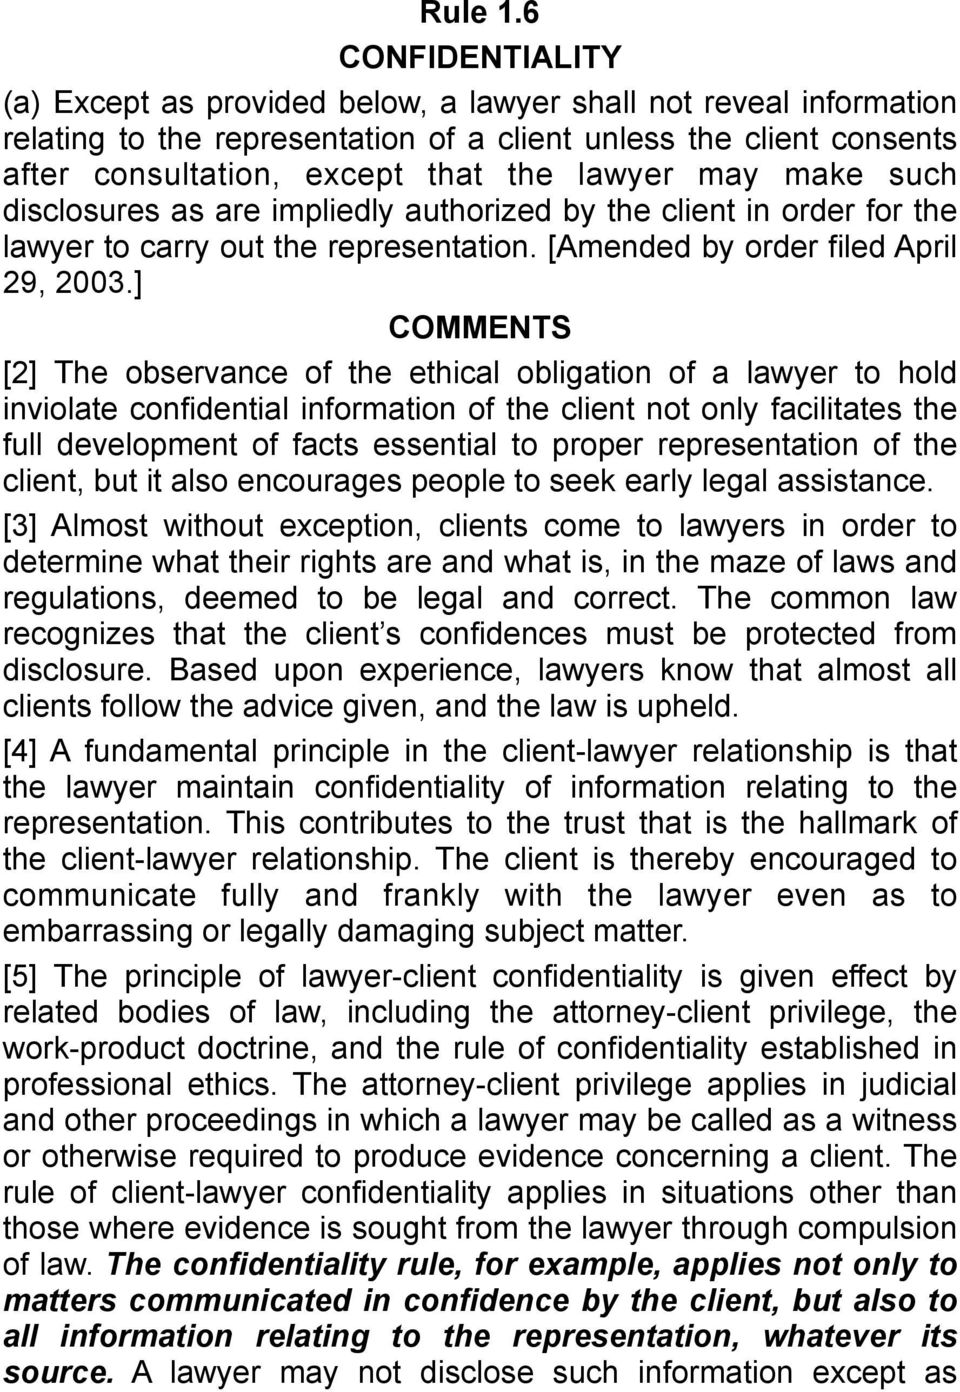 may make such disclosures as are impliedly authorized by the client in order for the lawyer to carry out the representation. [Amended by order filed April 29, 2003.